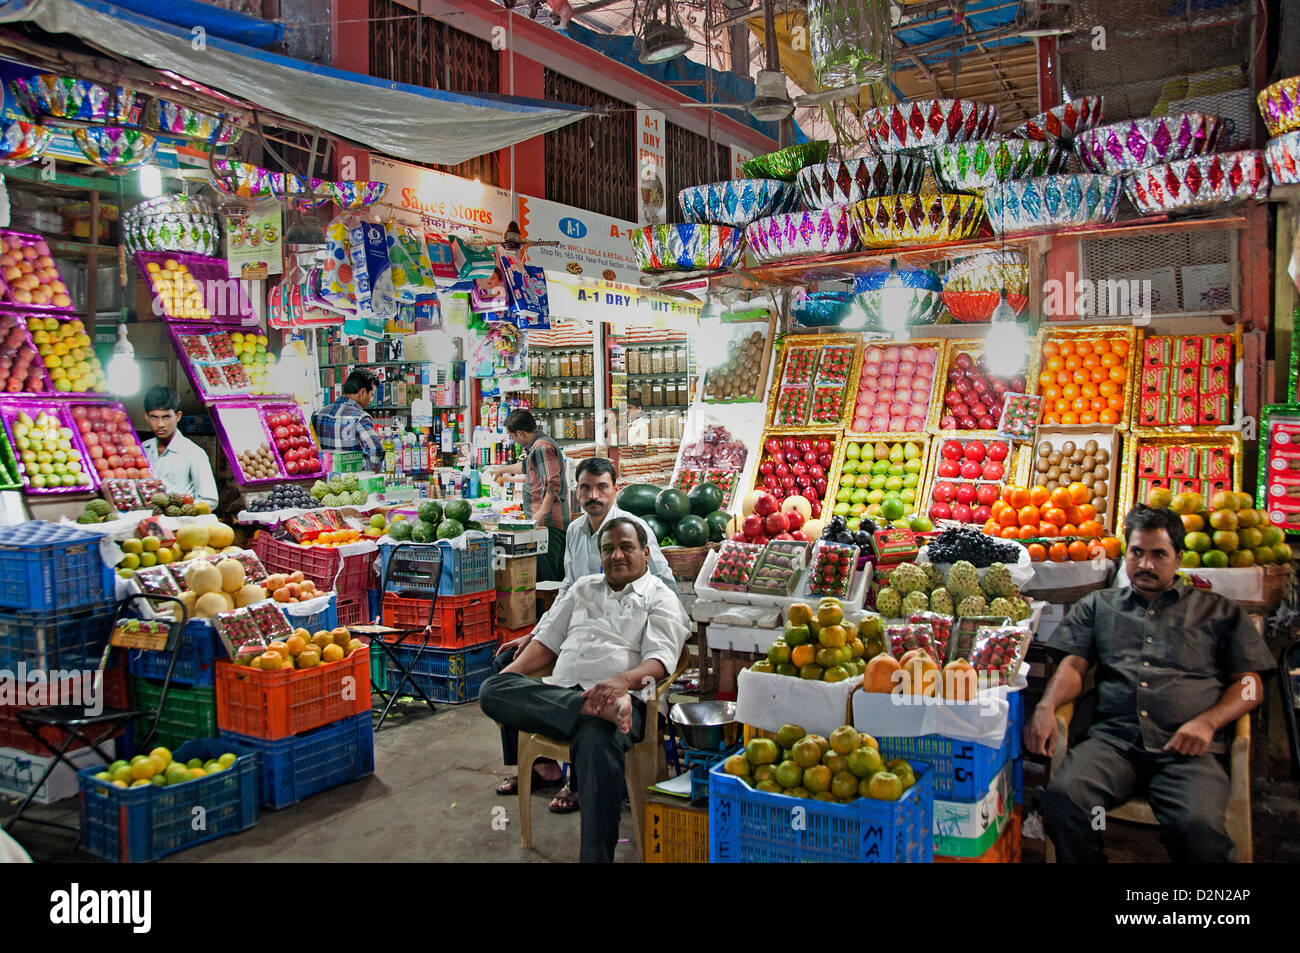 Mumbai bombay india crawford market greengrocer fruits for City indian dining ltd t a spice trader